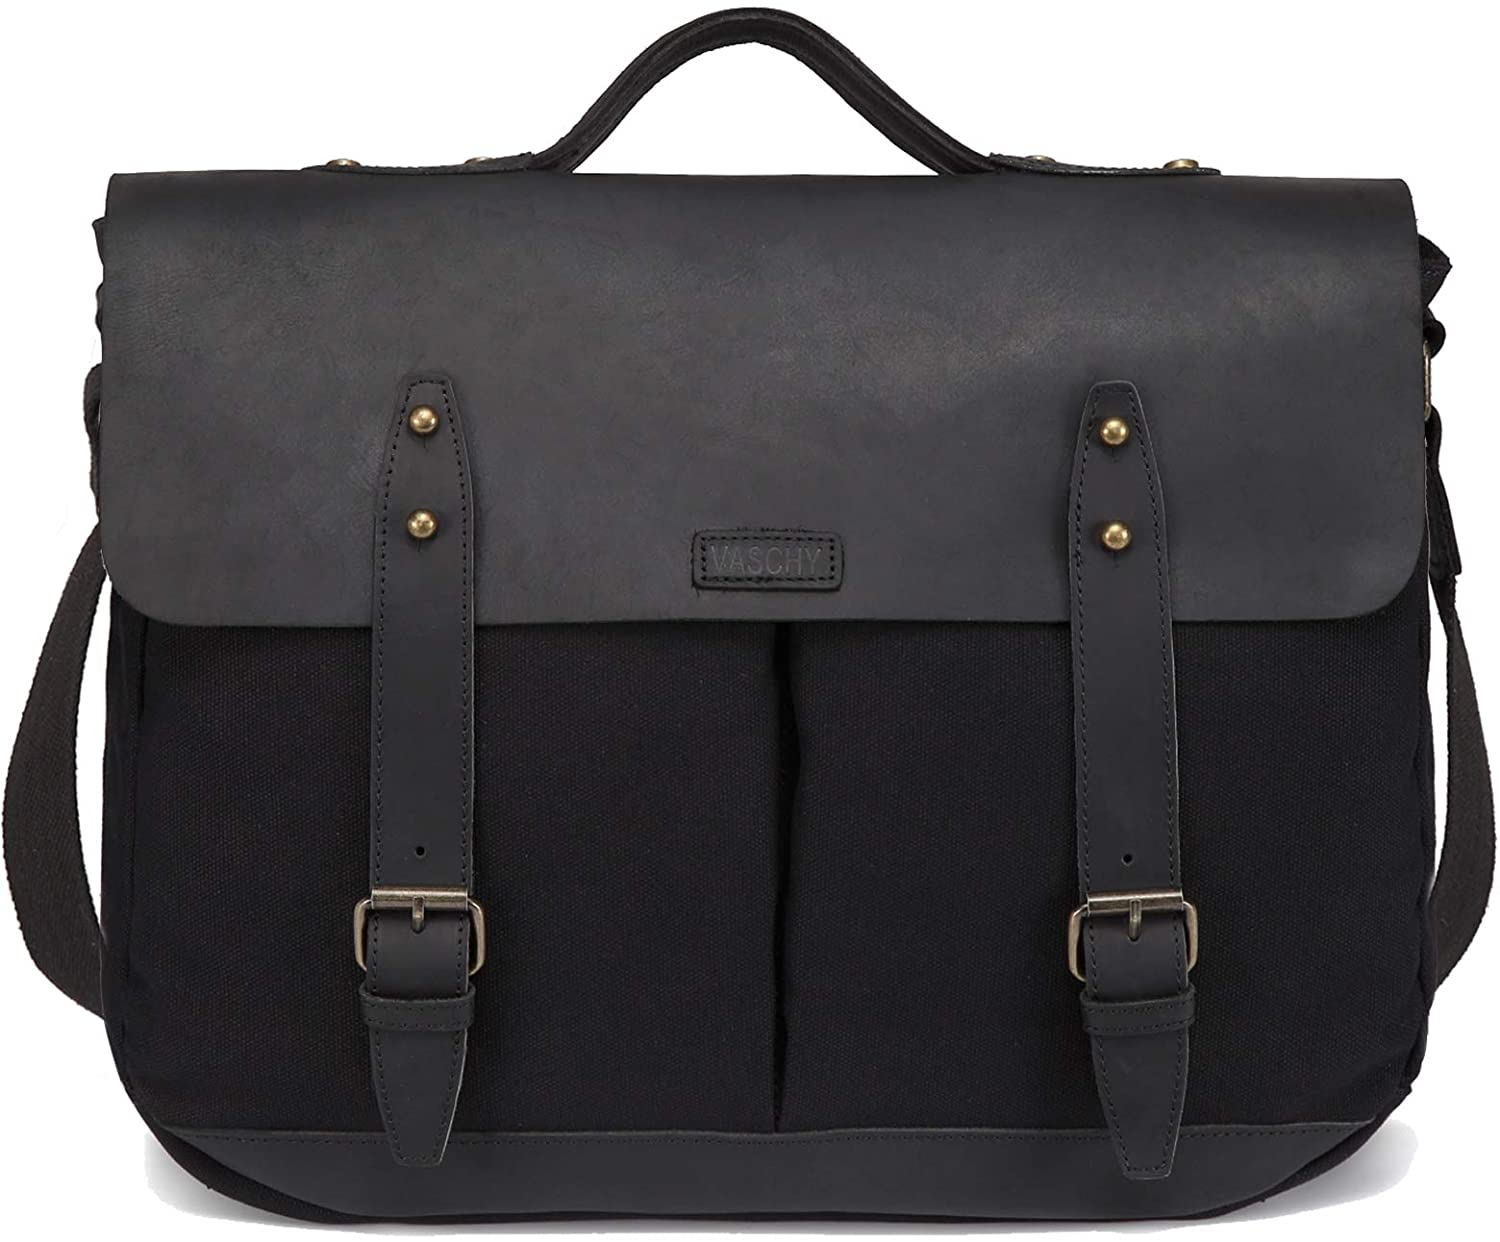 Vaschy Vintage satchel 15.6 inch laptop business briefcase for young teachers